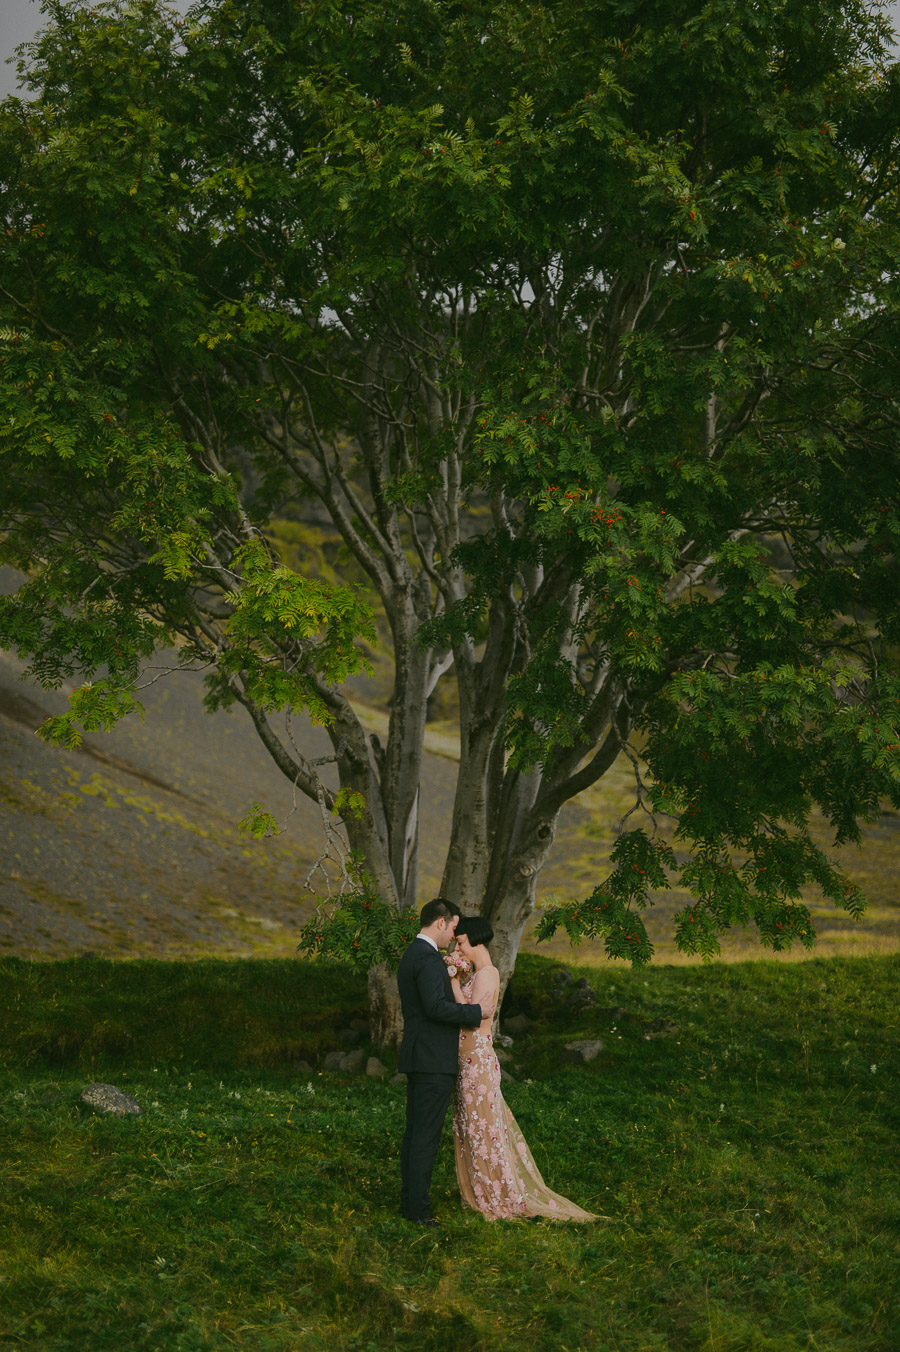 maja_patrick_iceland_wedding_photographer_mait_juriado-059